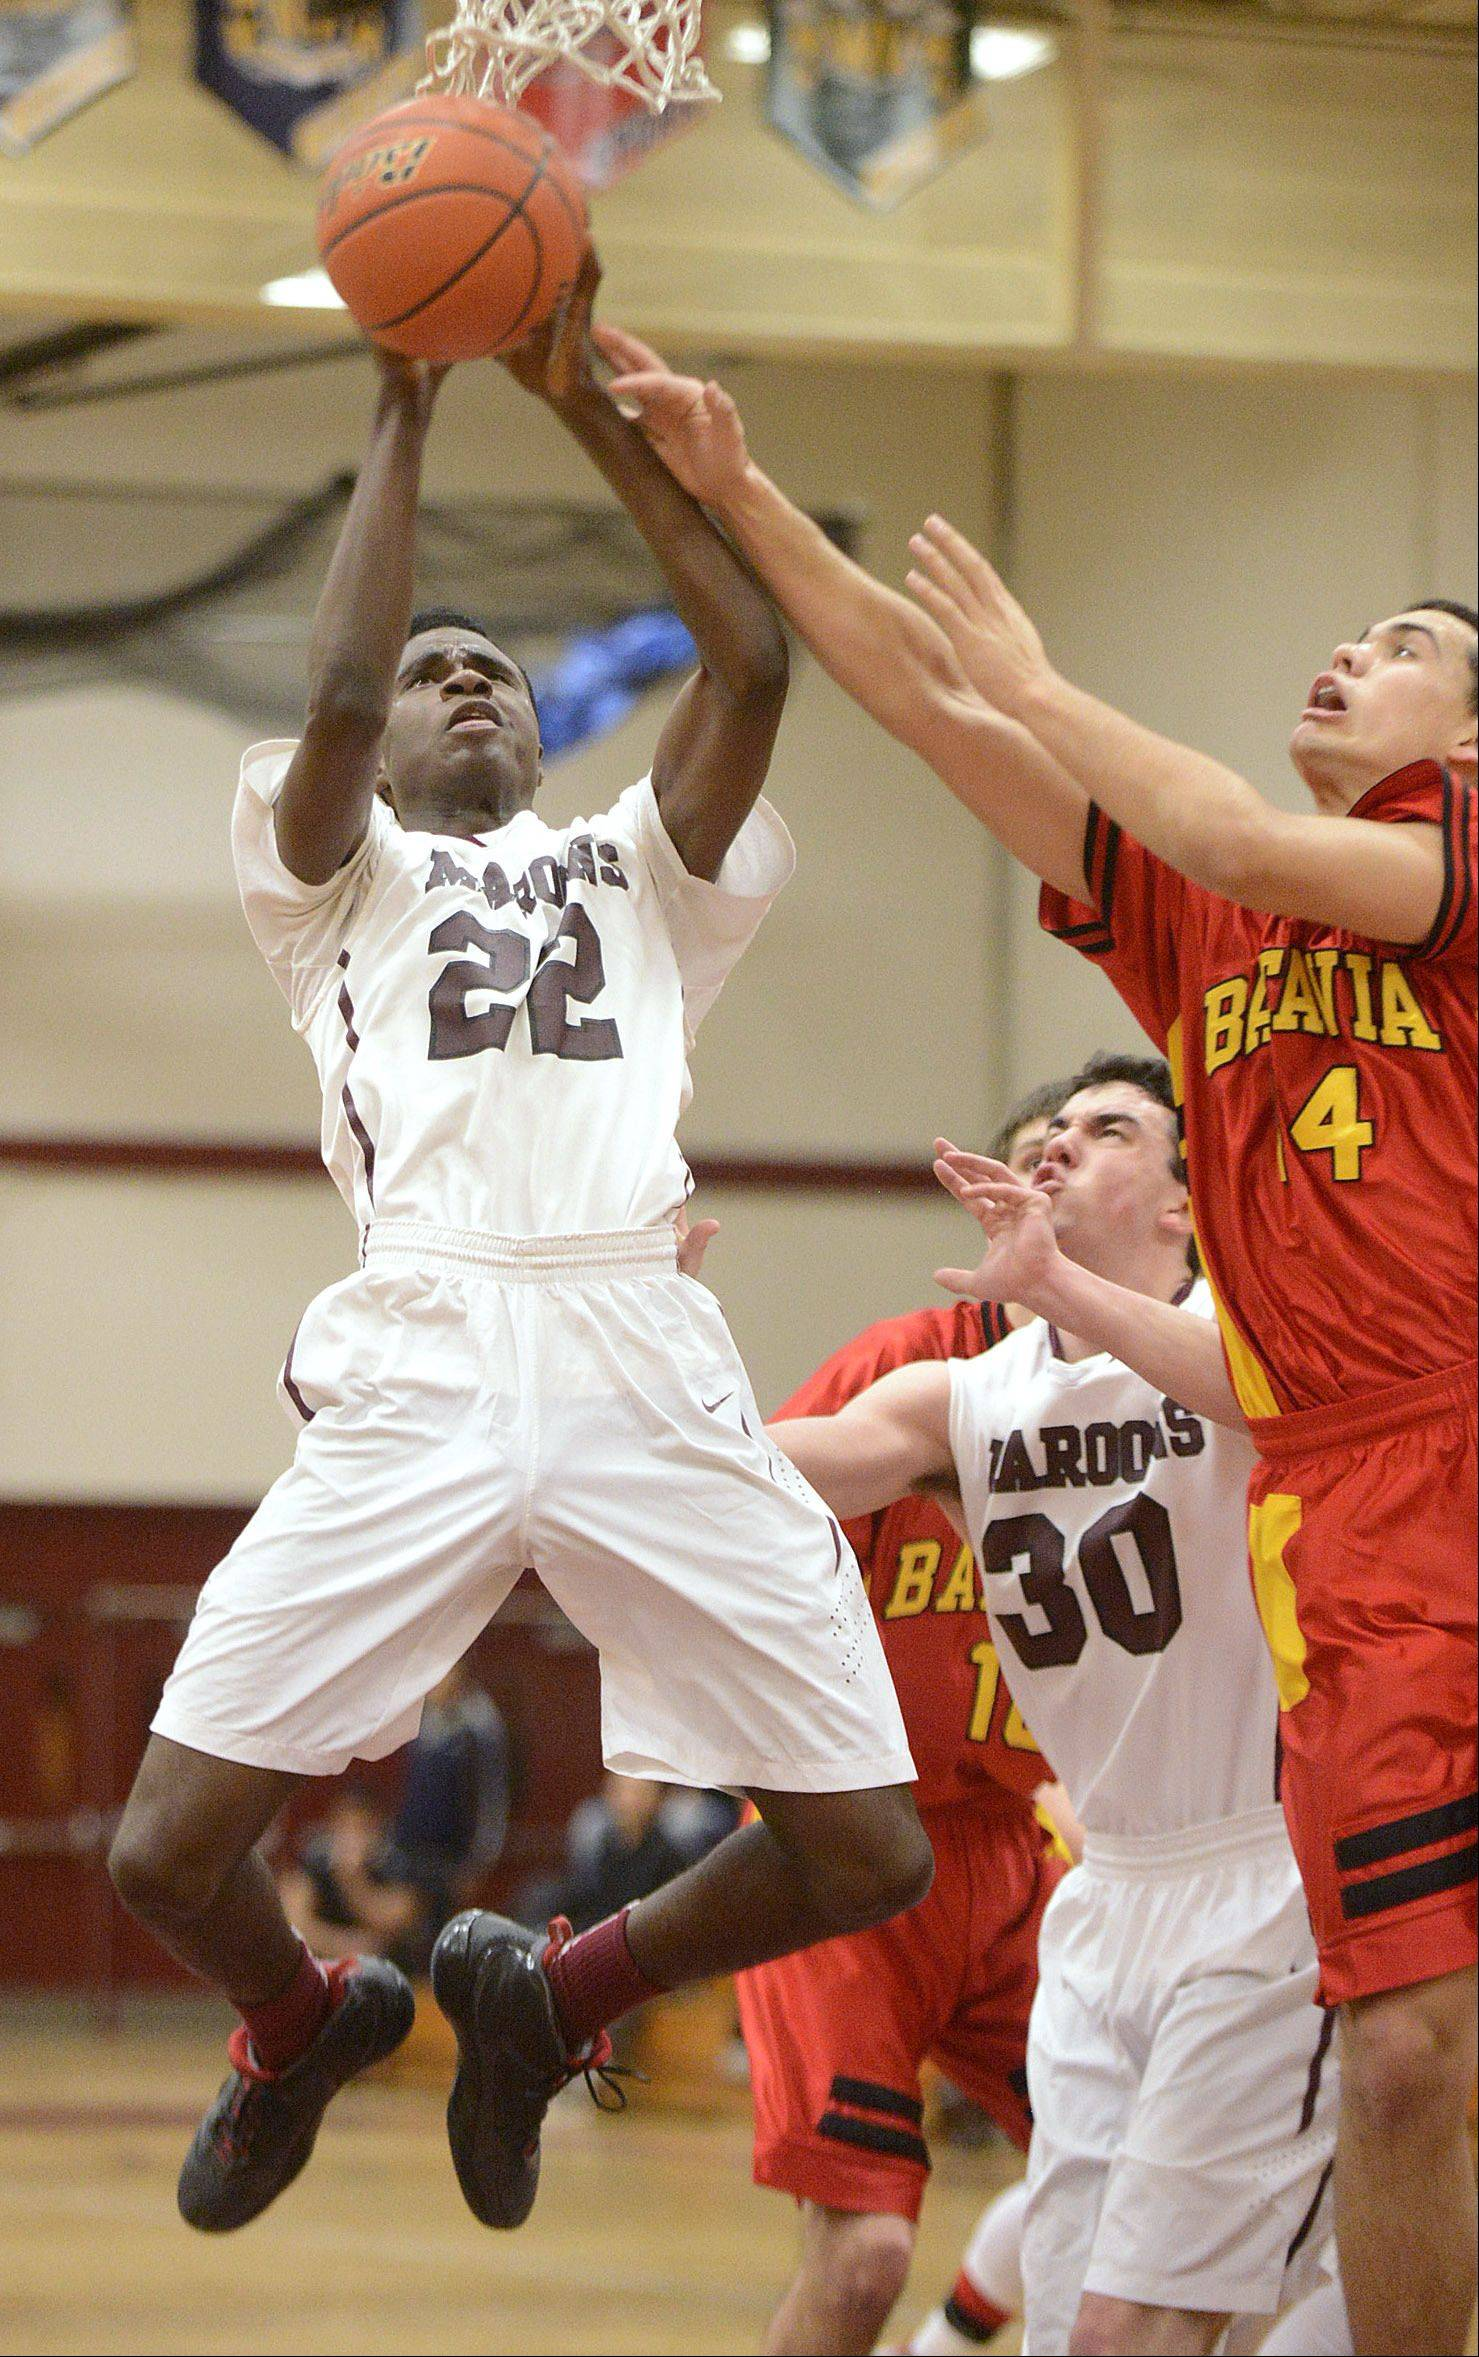 Butler's game-winner puts Elgin past Batavia